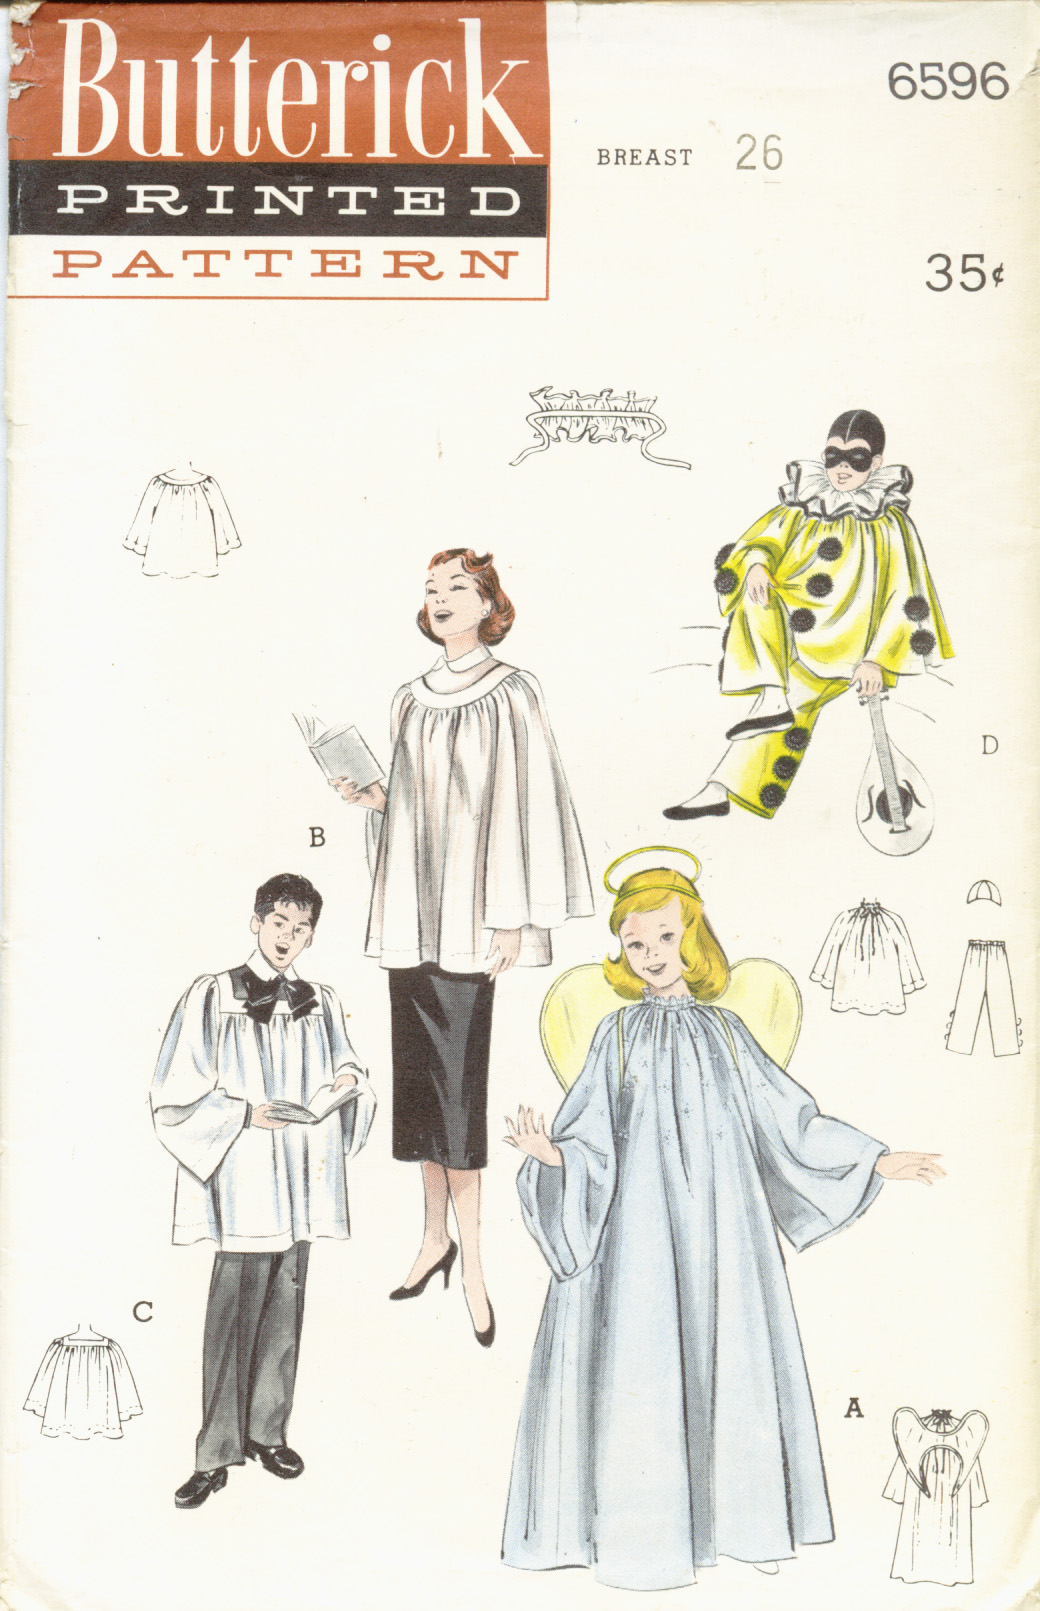 Butterick 6596 vintage sewing patterns fandom powered by wikia butterick 6596 sewing patterns angel clown costumes and choir robes pattern set for girls or boys copyright 1953 reprinted 1959 60 jeuxipadfo Gallery